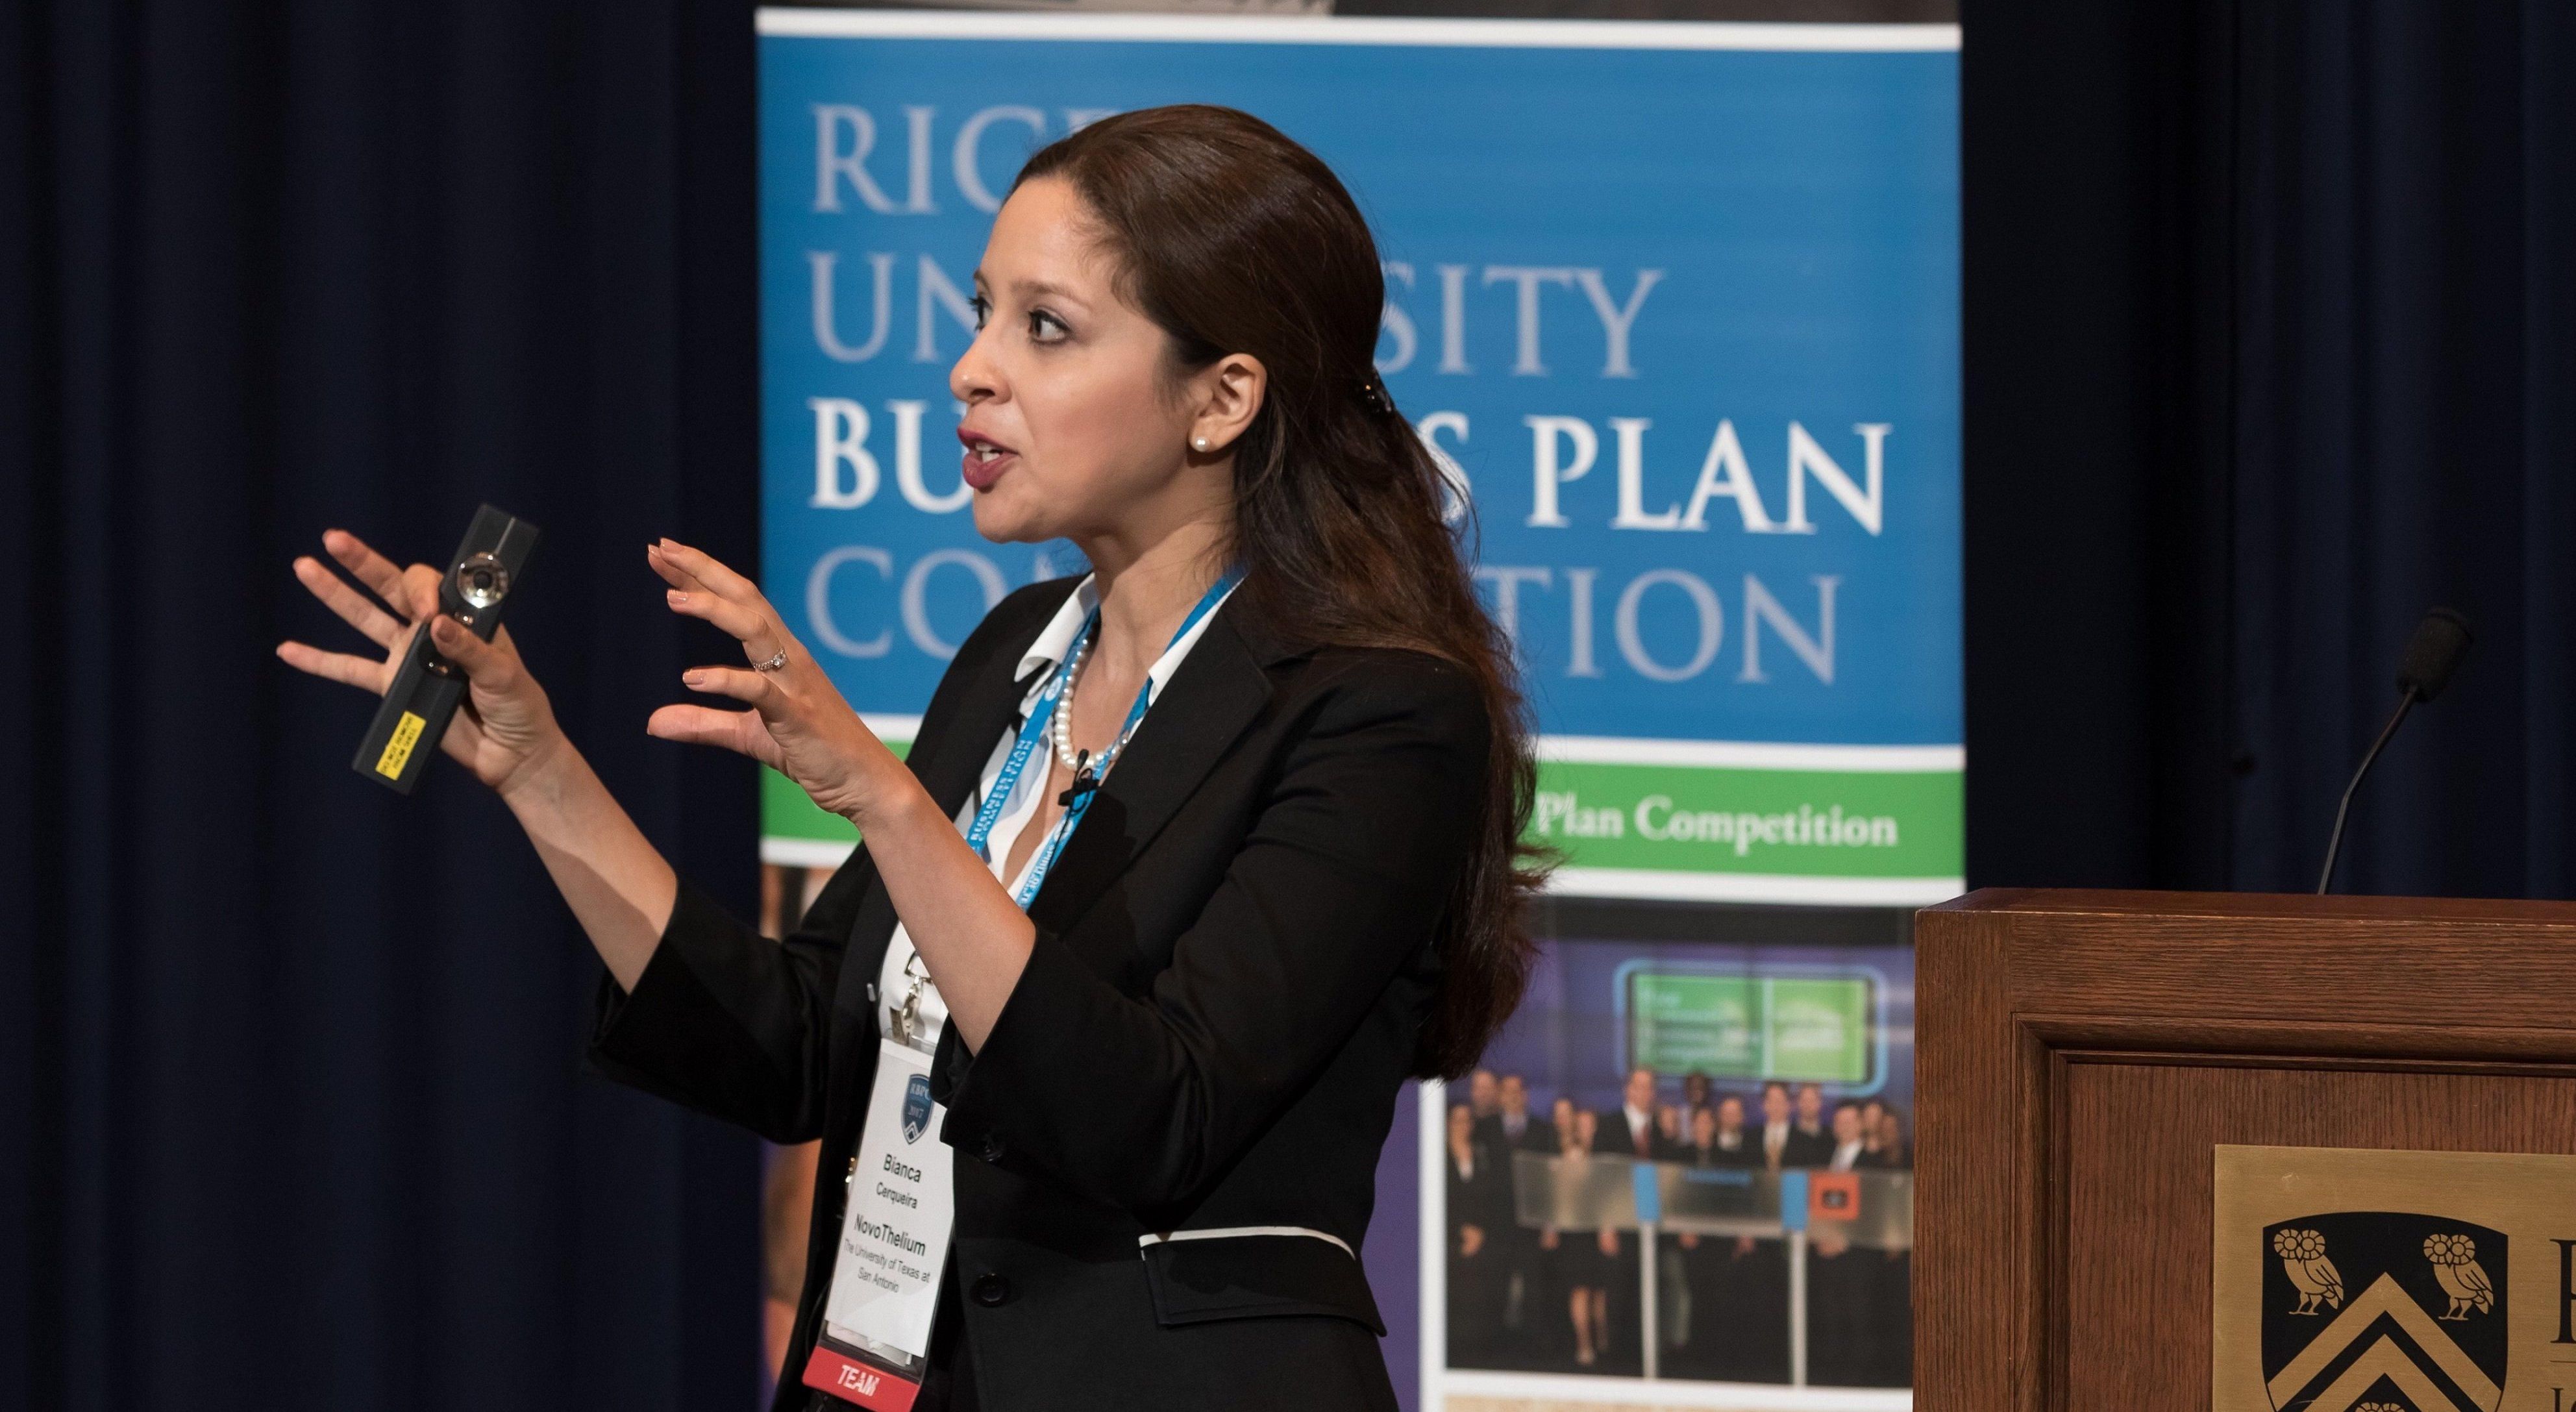 Apply for the Rice Business Plan Competition 2018 ($1.5 million in cash and prizes)